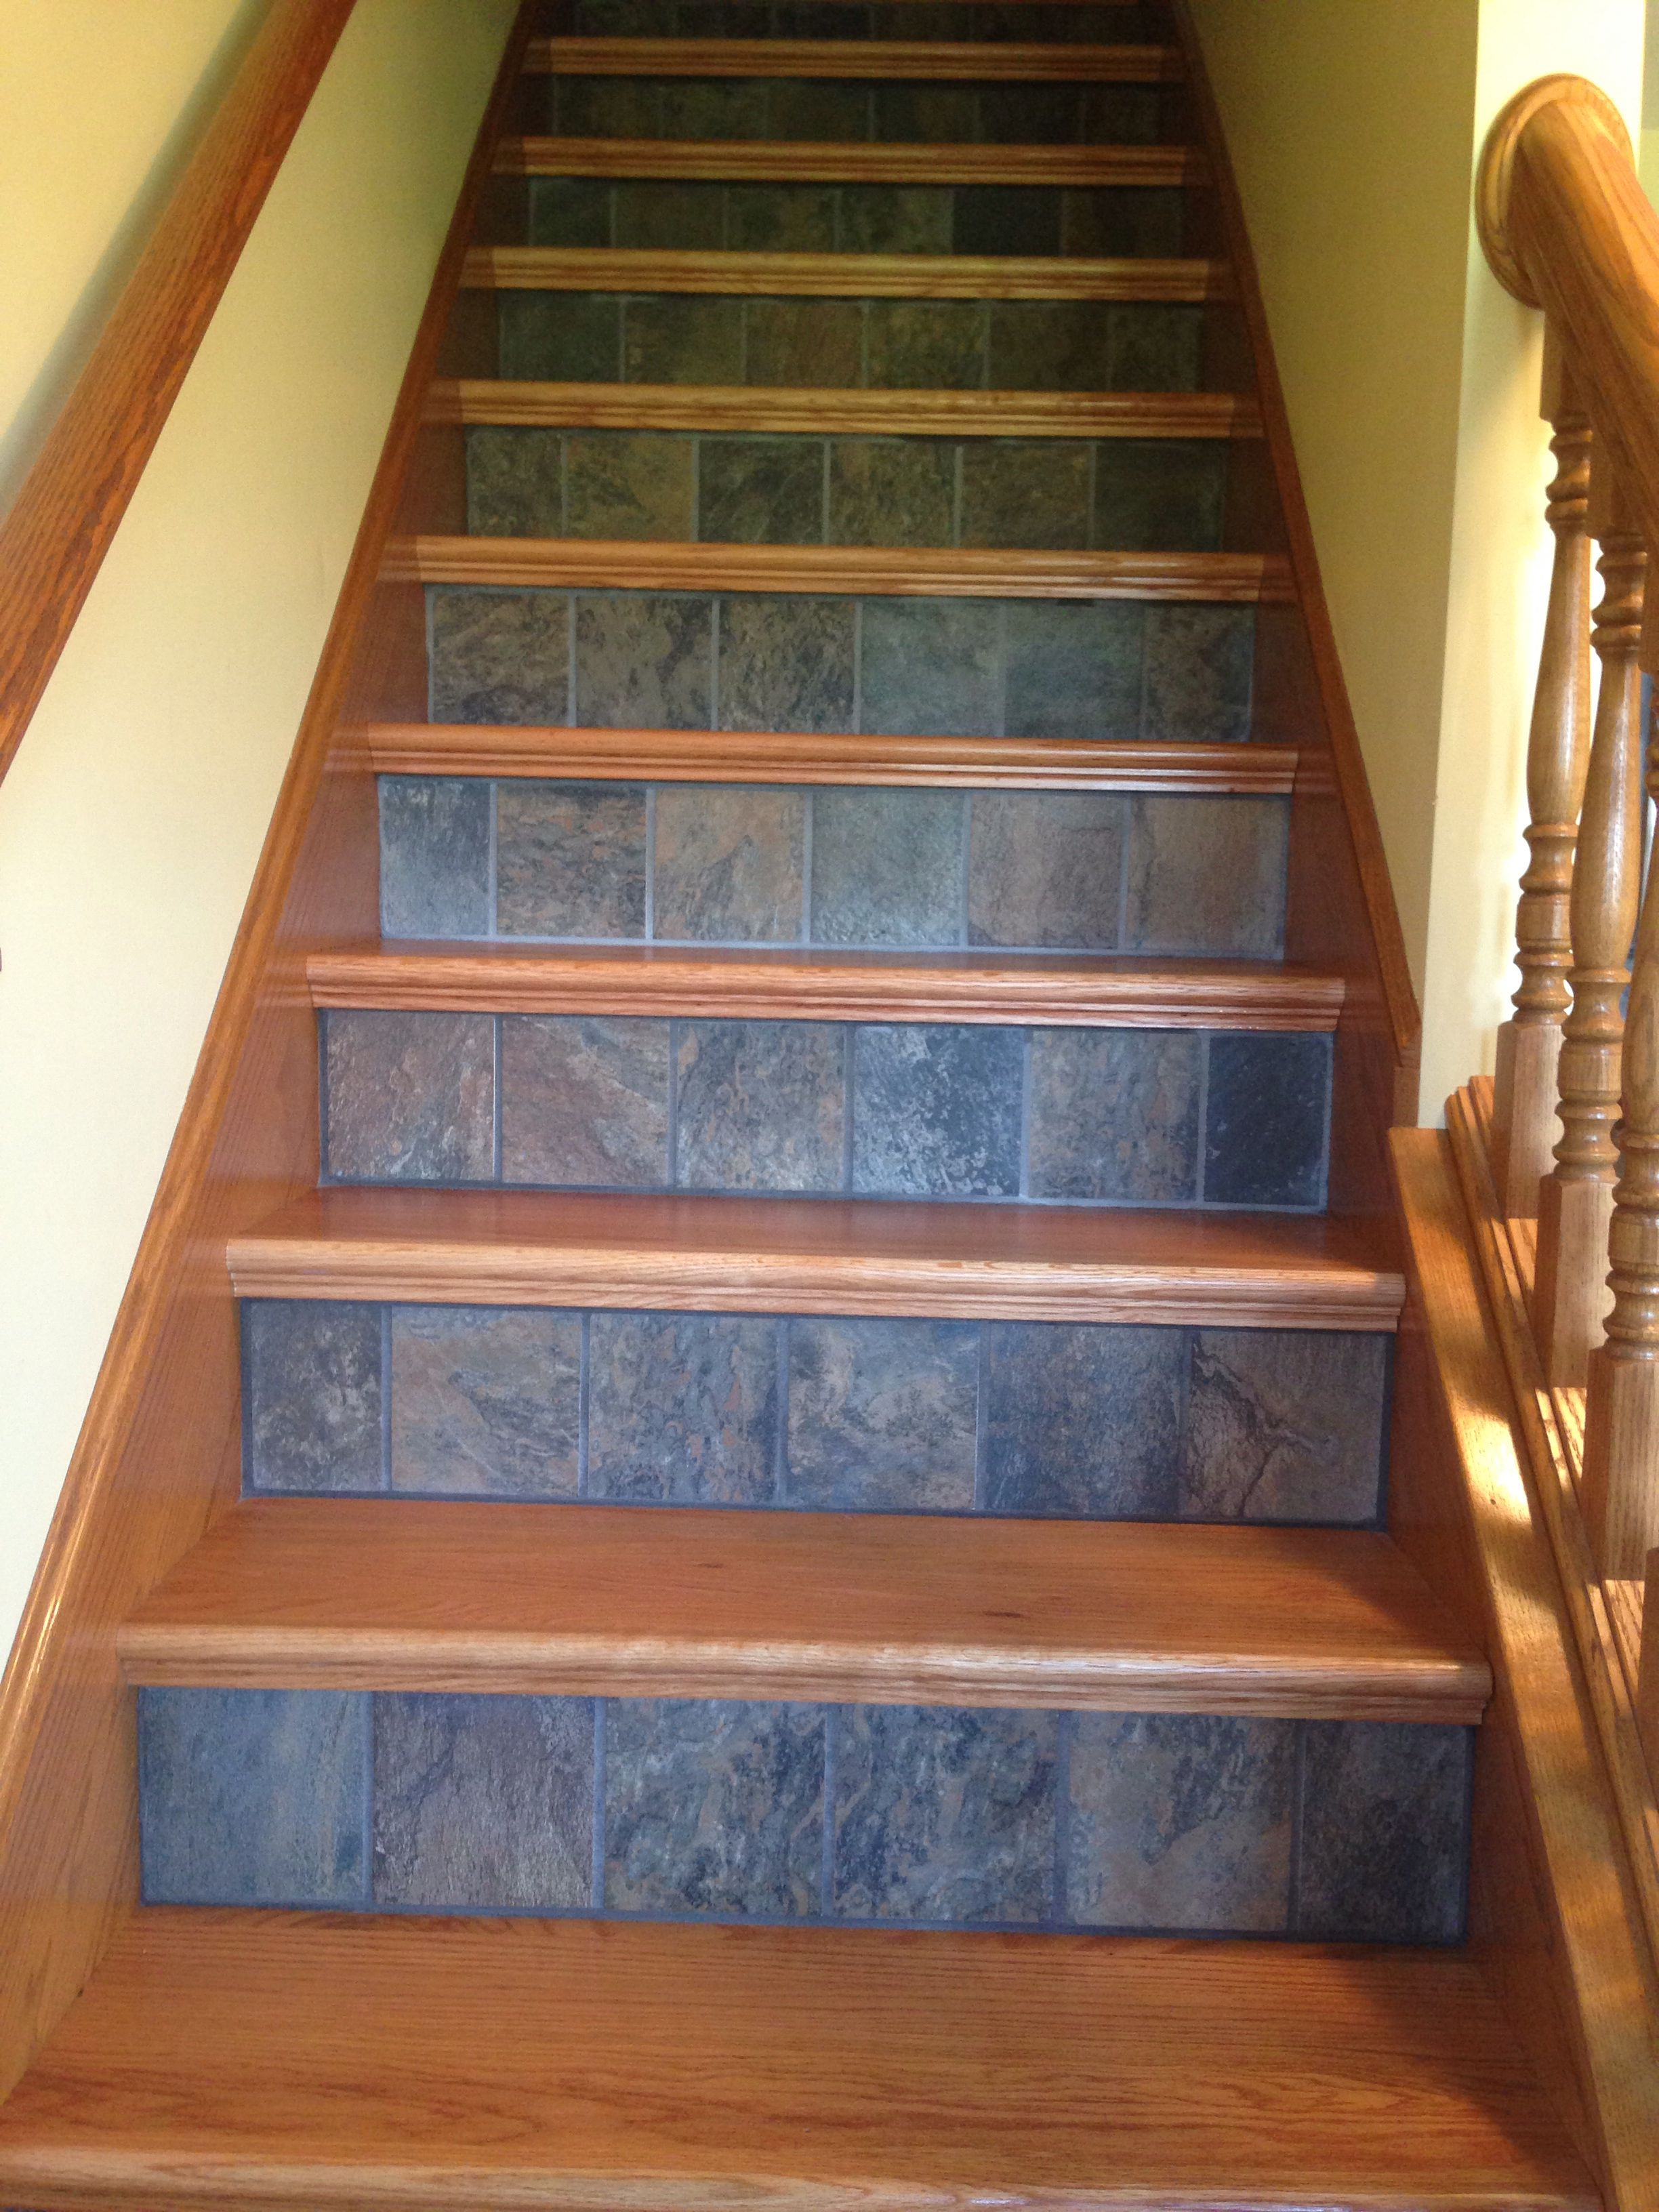 Replacing Carpet With A Fresh New Look Home Remodeling Diy | Fixing Carpet On Stairs | Wood | Staircase | Runner | Stair Nosing | Install